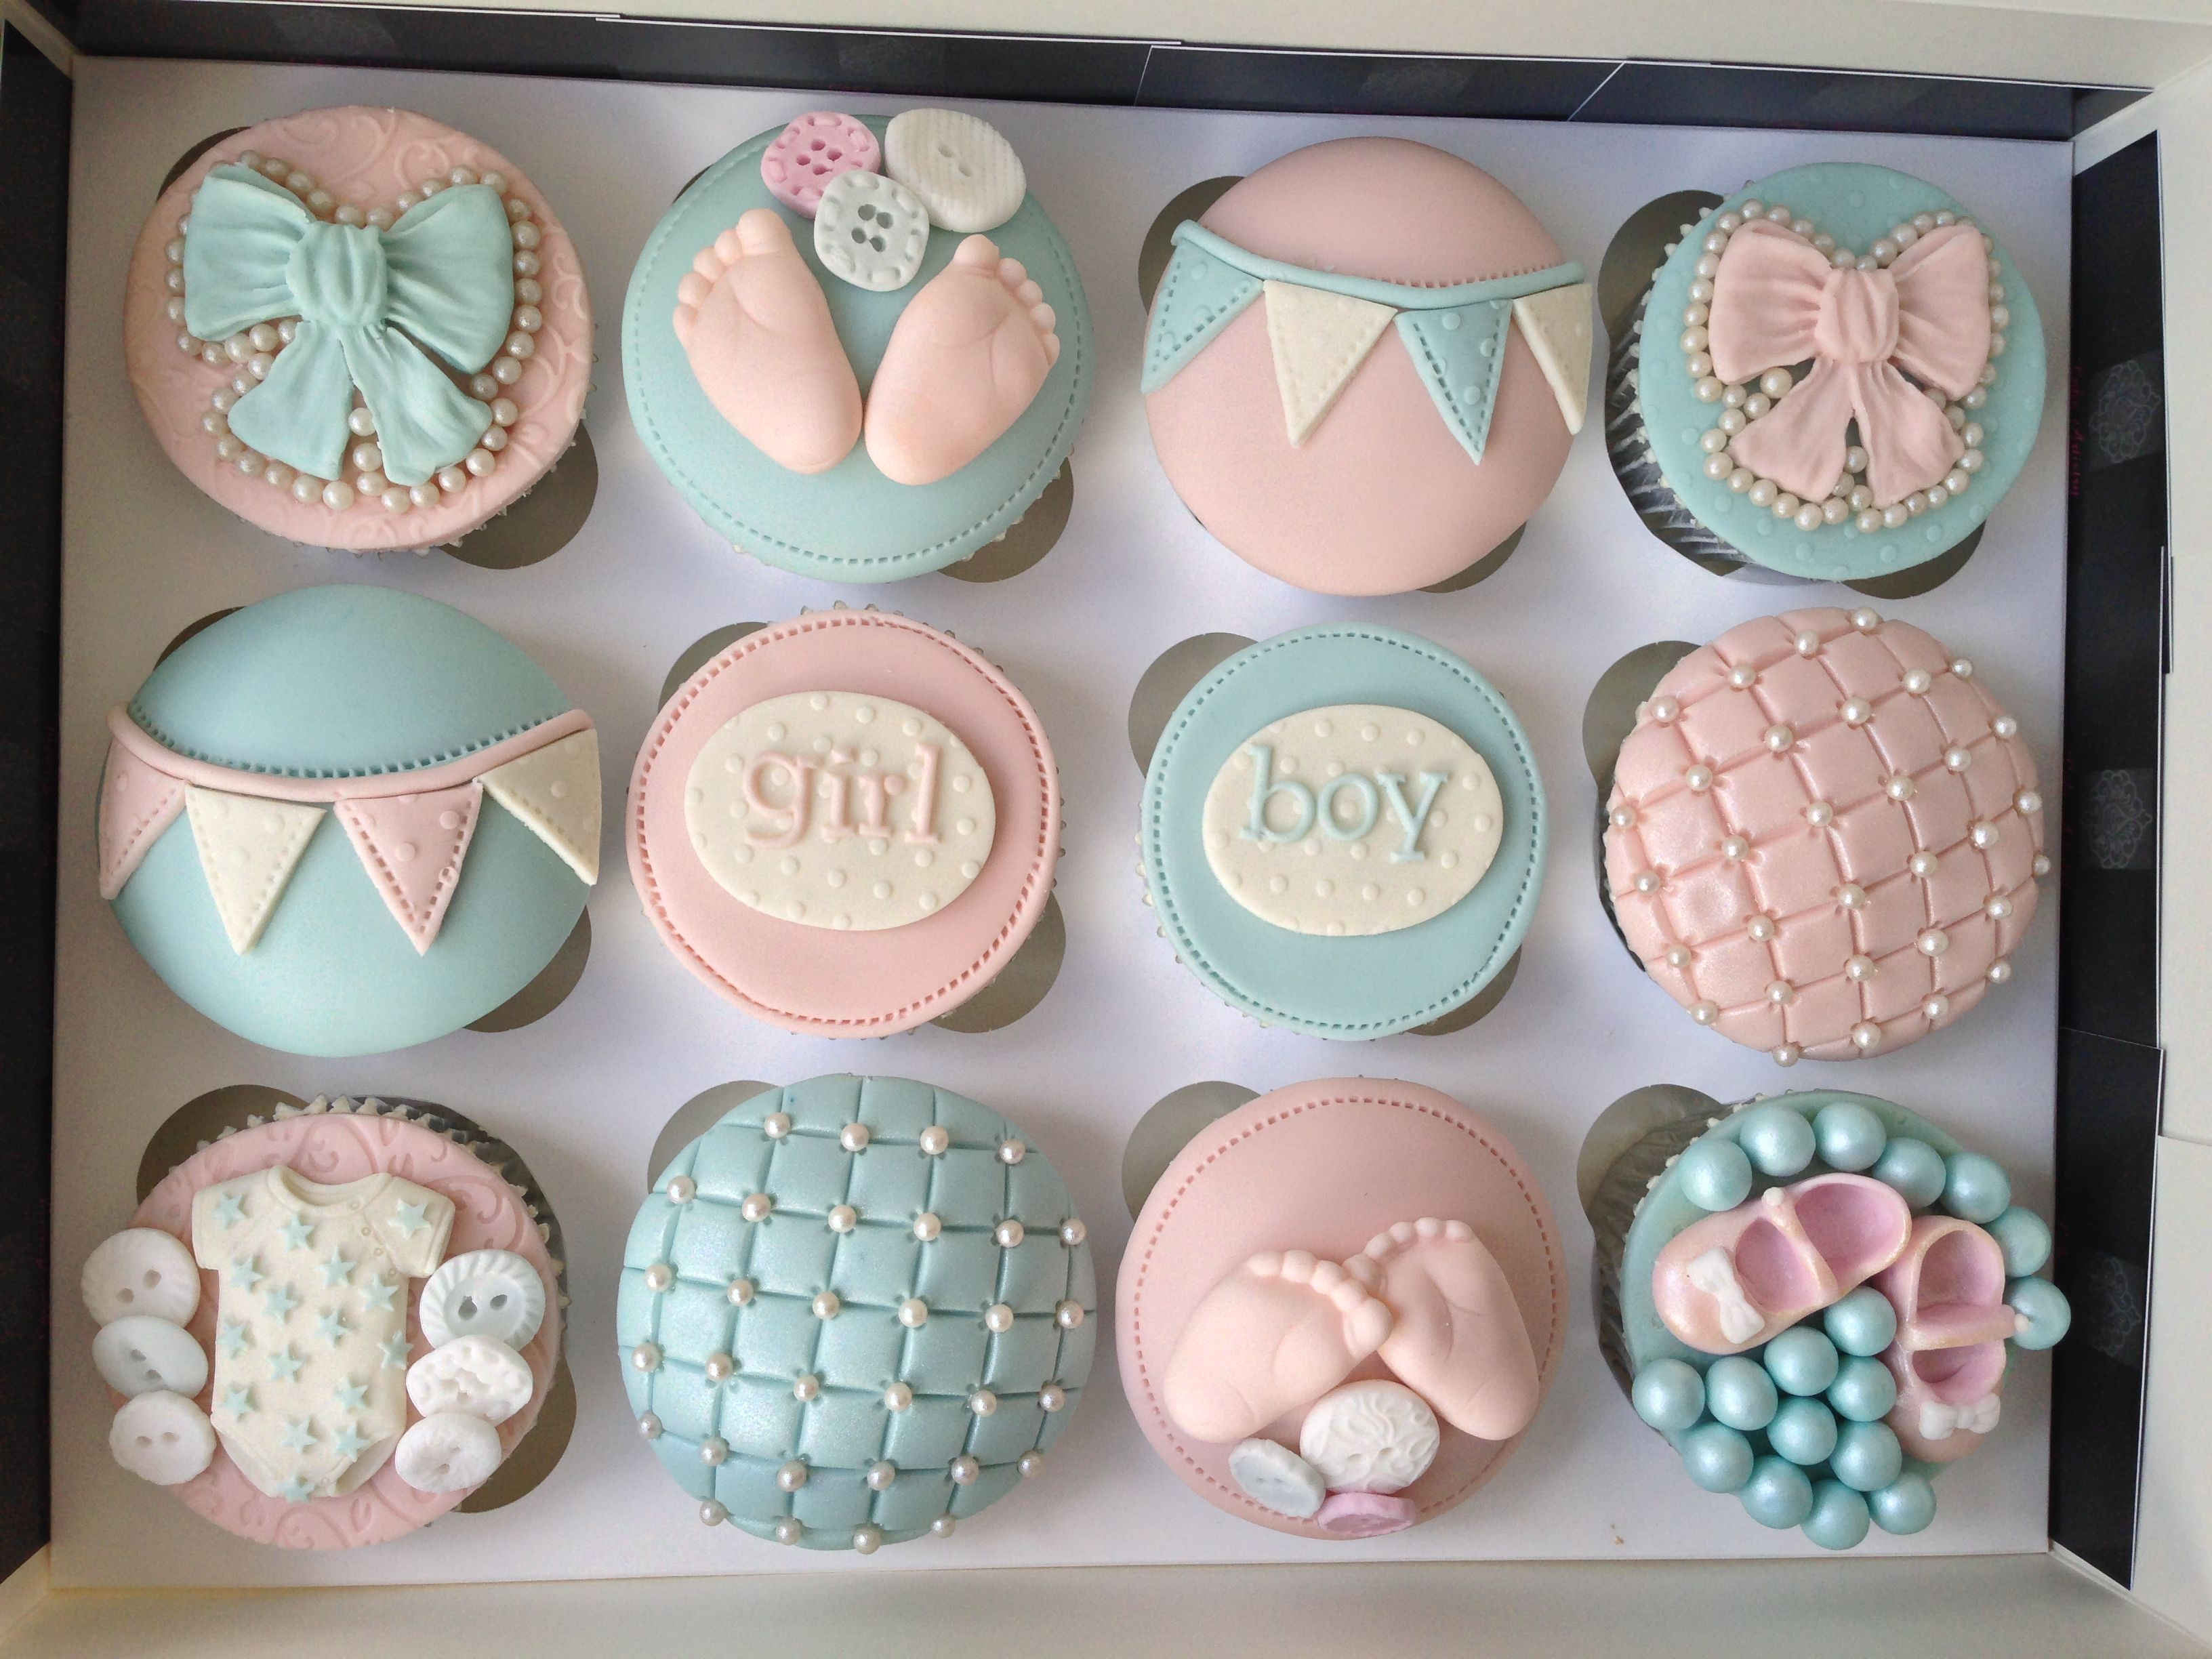 Baby shower cupcakes boy or girl baby shower cupcakes baby shower pinterest baby shower - Girl baby shower cupcake ideas ...